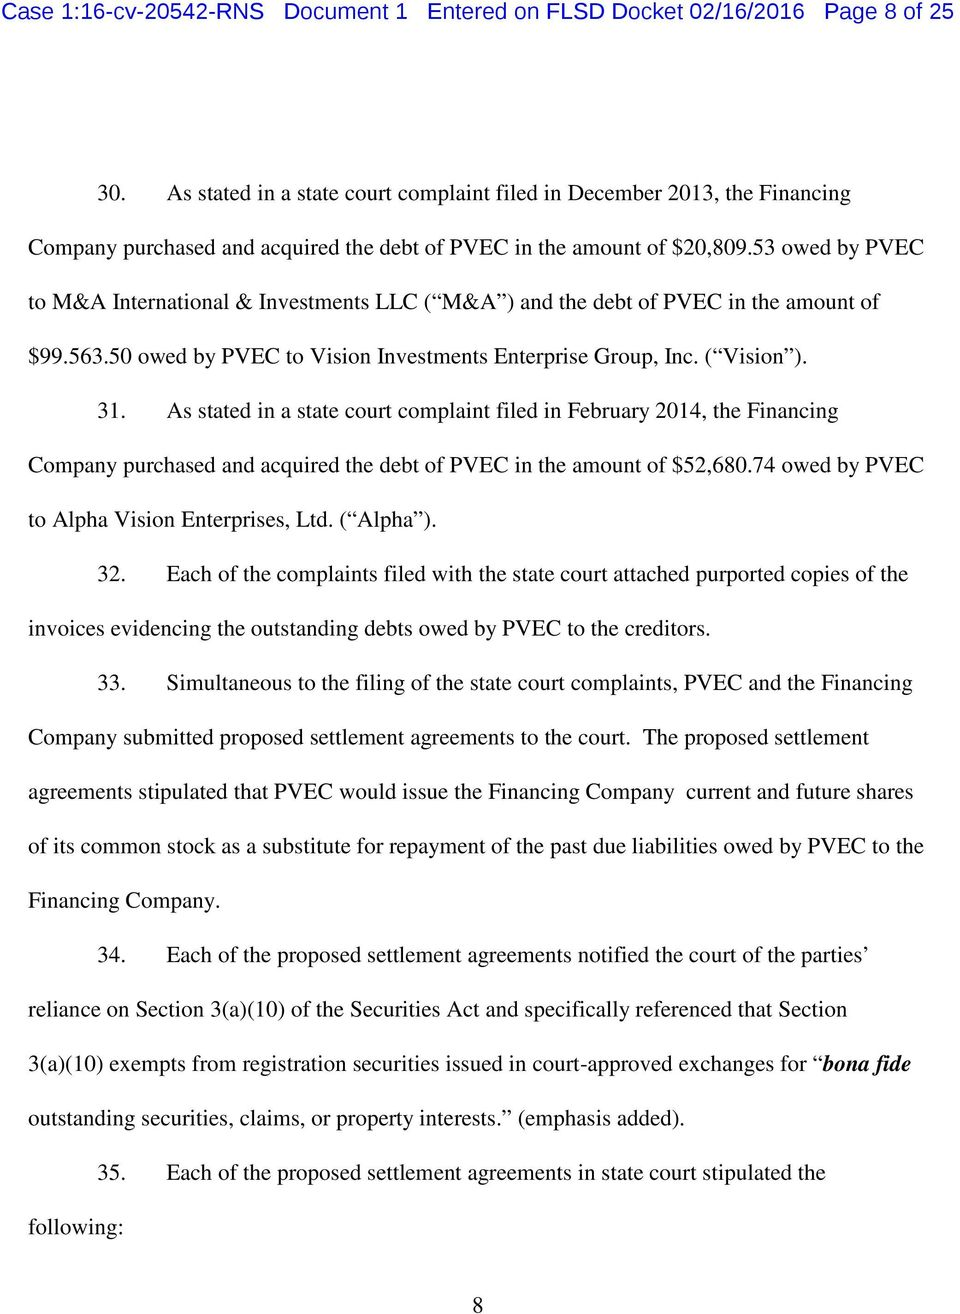 53 owed by PVEC to M&A International & Investments LLC ( M&A ) and the debt of PVEC in the amount of $99.563.50 owed by PVEC to Vision Investments Enterprise Group, Inc. ( Vision ). 31.